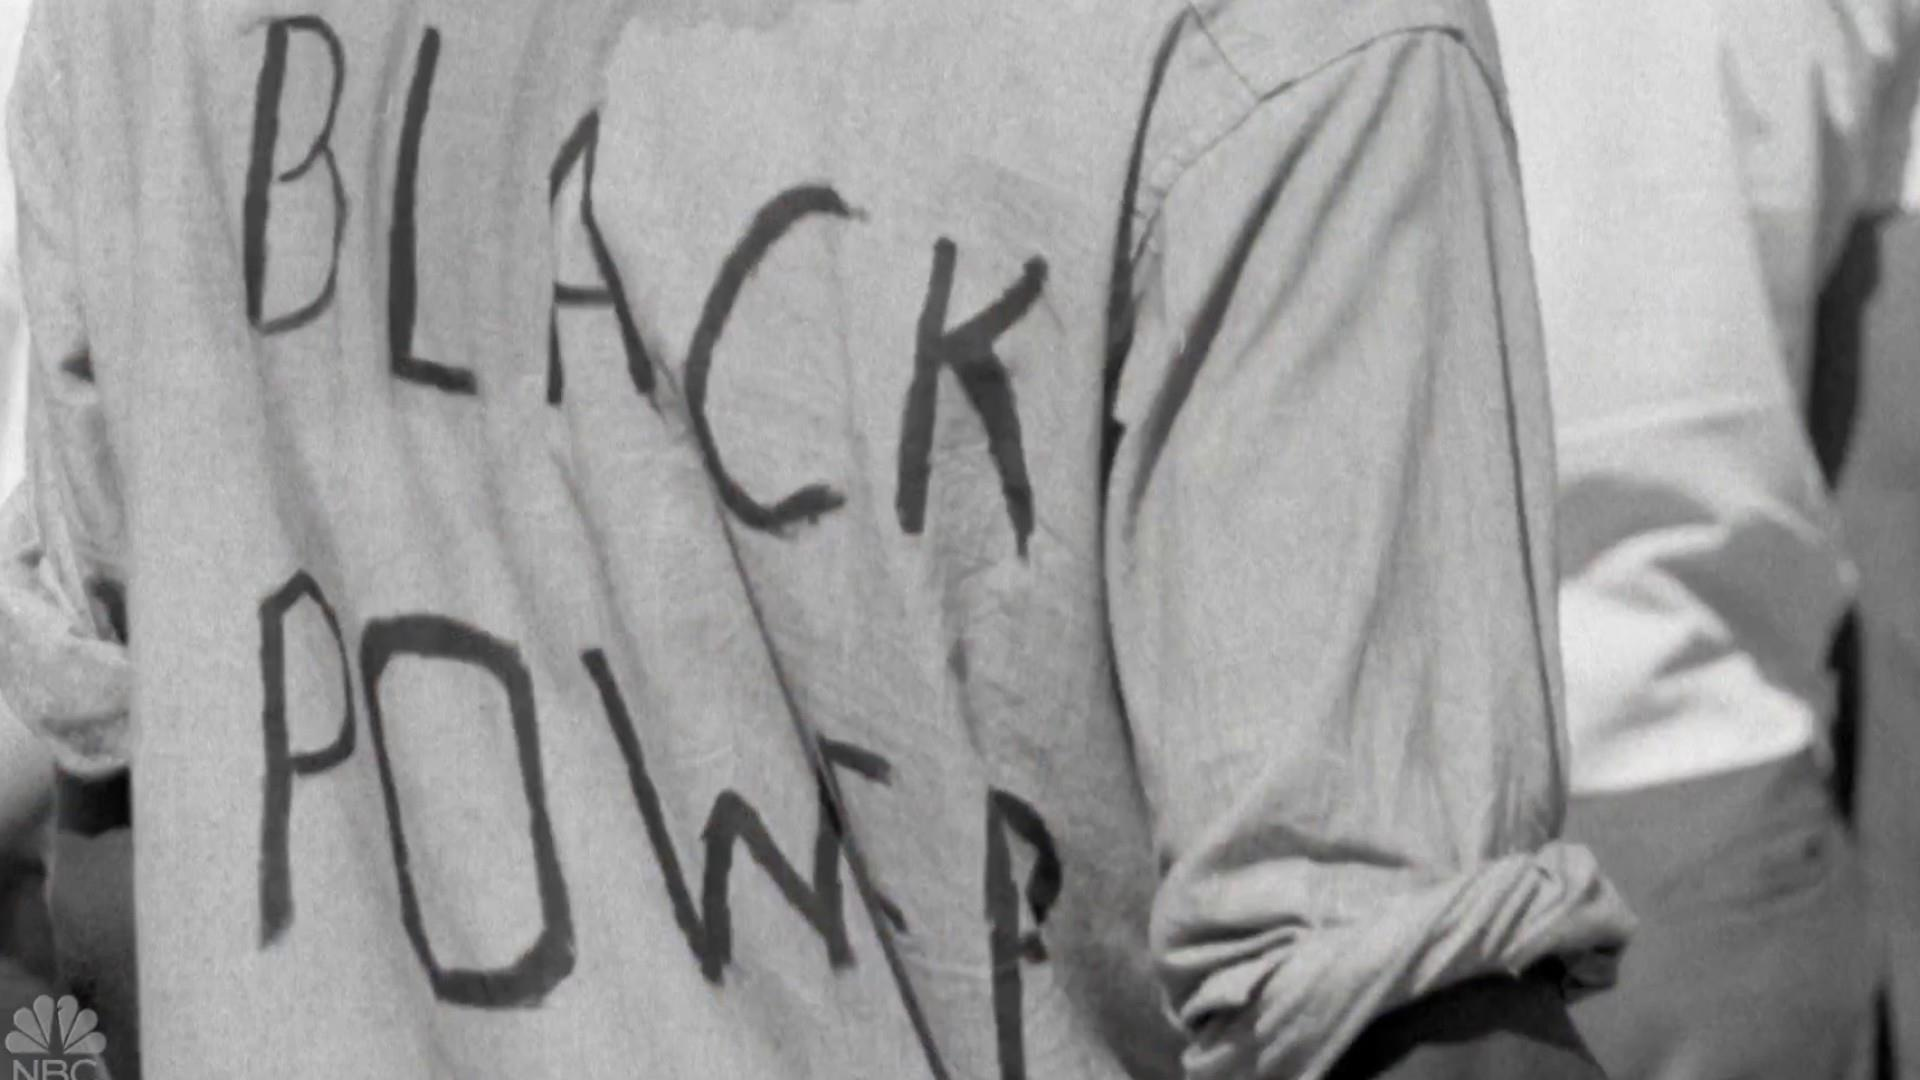 Black Lives Matter And Power